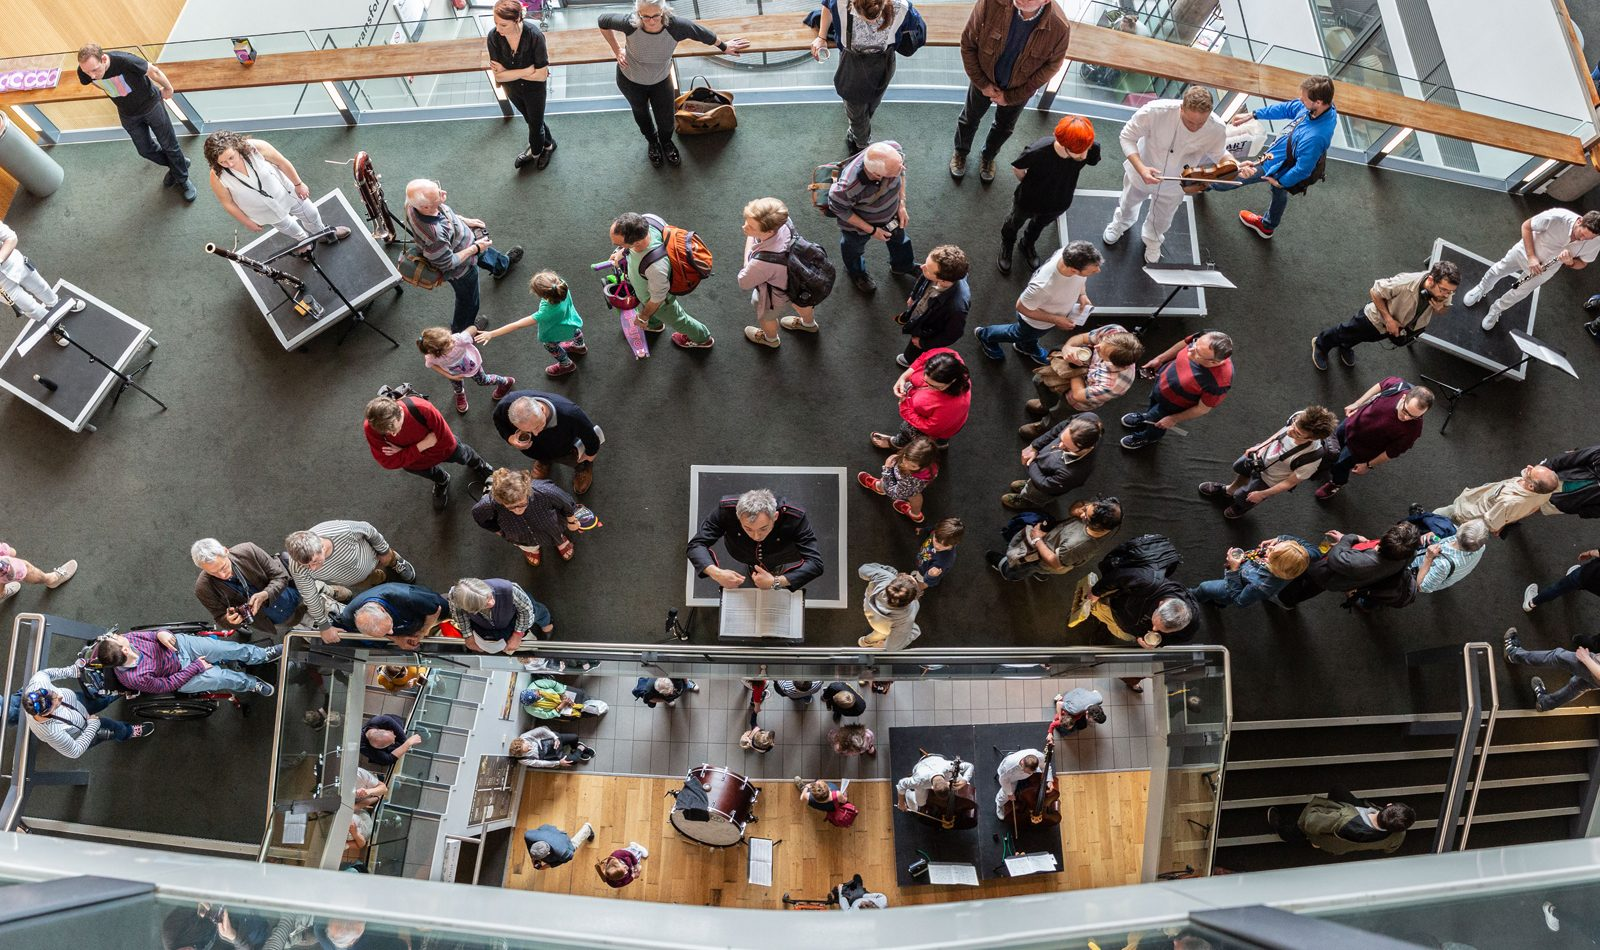 Aerial photo of a conductor, musicians play behind whilsyt audiences wander around them